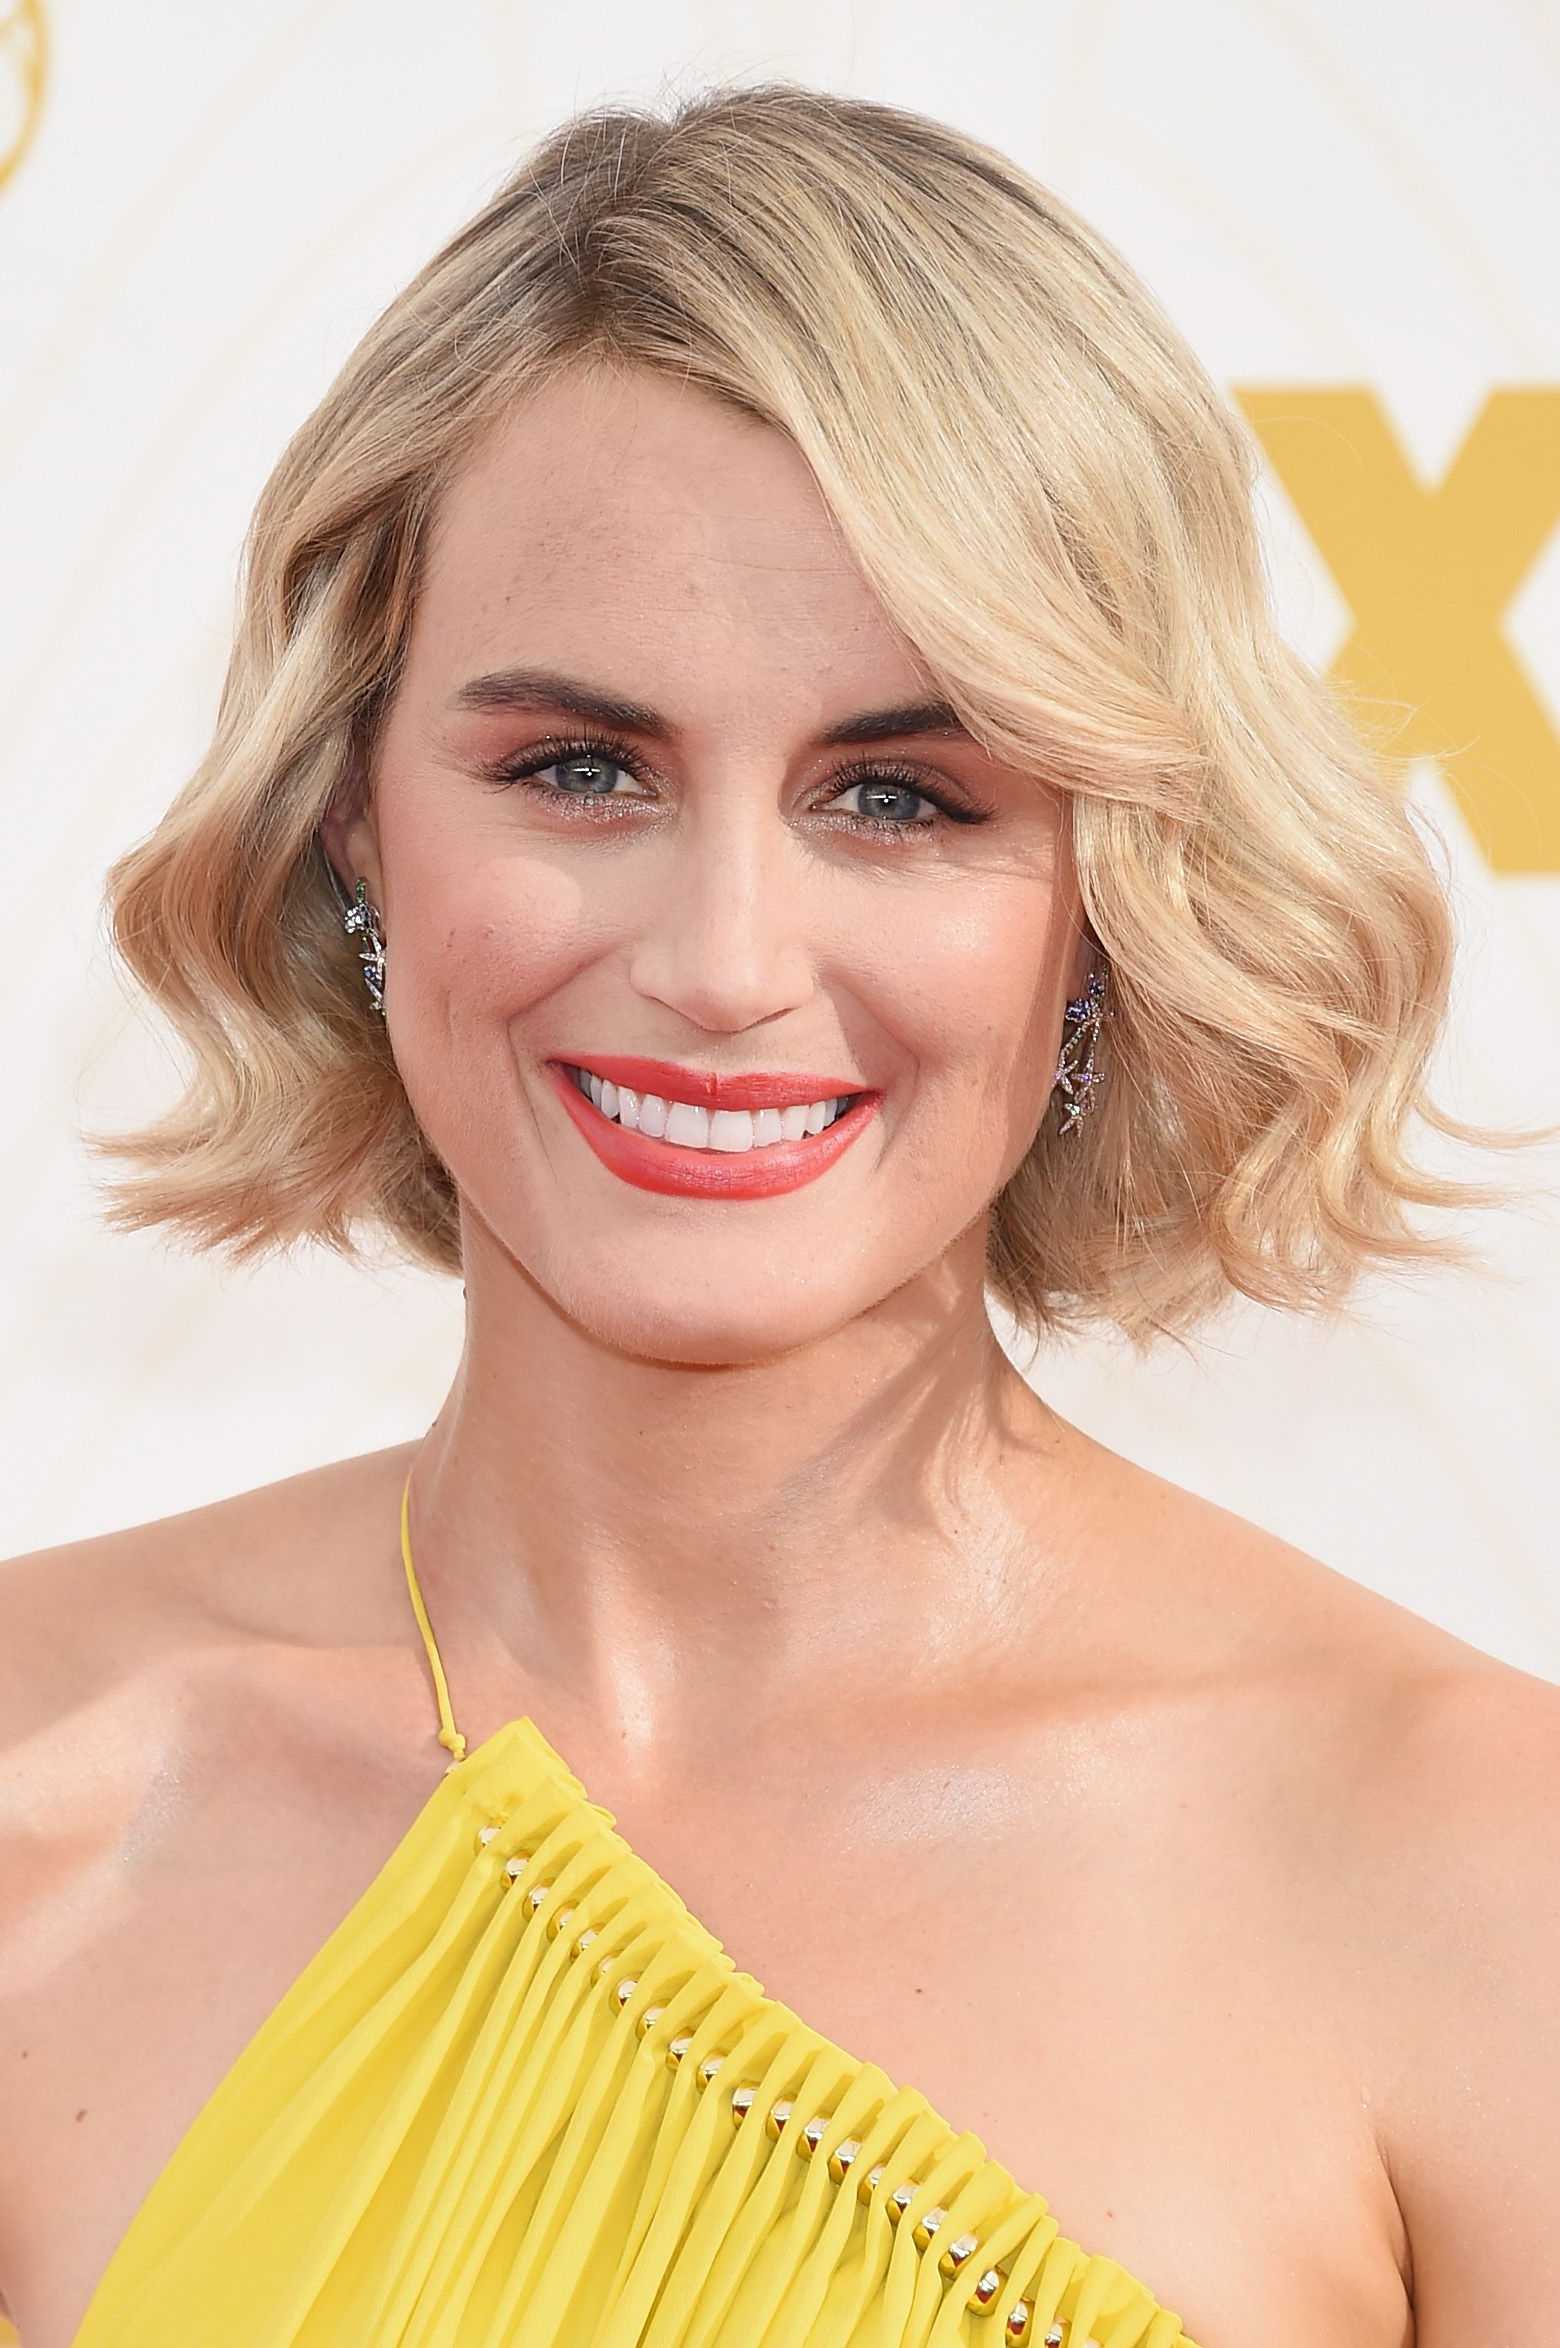 65 Best Short Hairstyles, Haircuts, And Short Hair Ideas For 2018 Within Fall Short Hairstyles (Gallery 25 of 25)